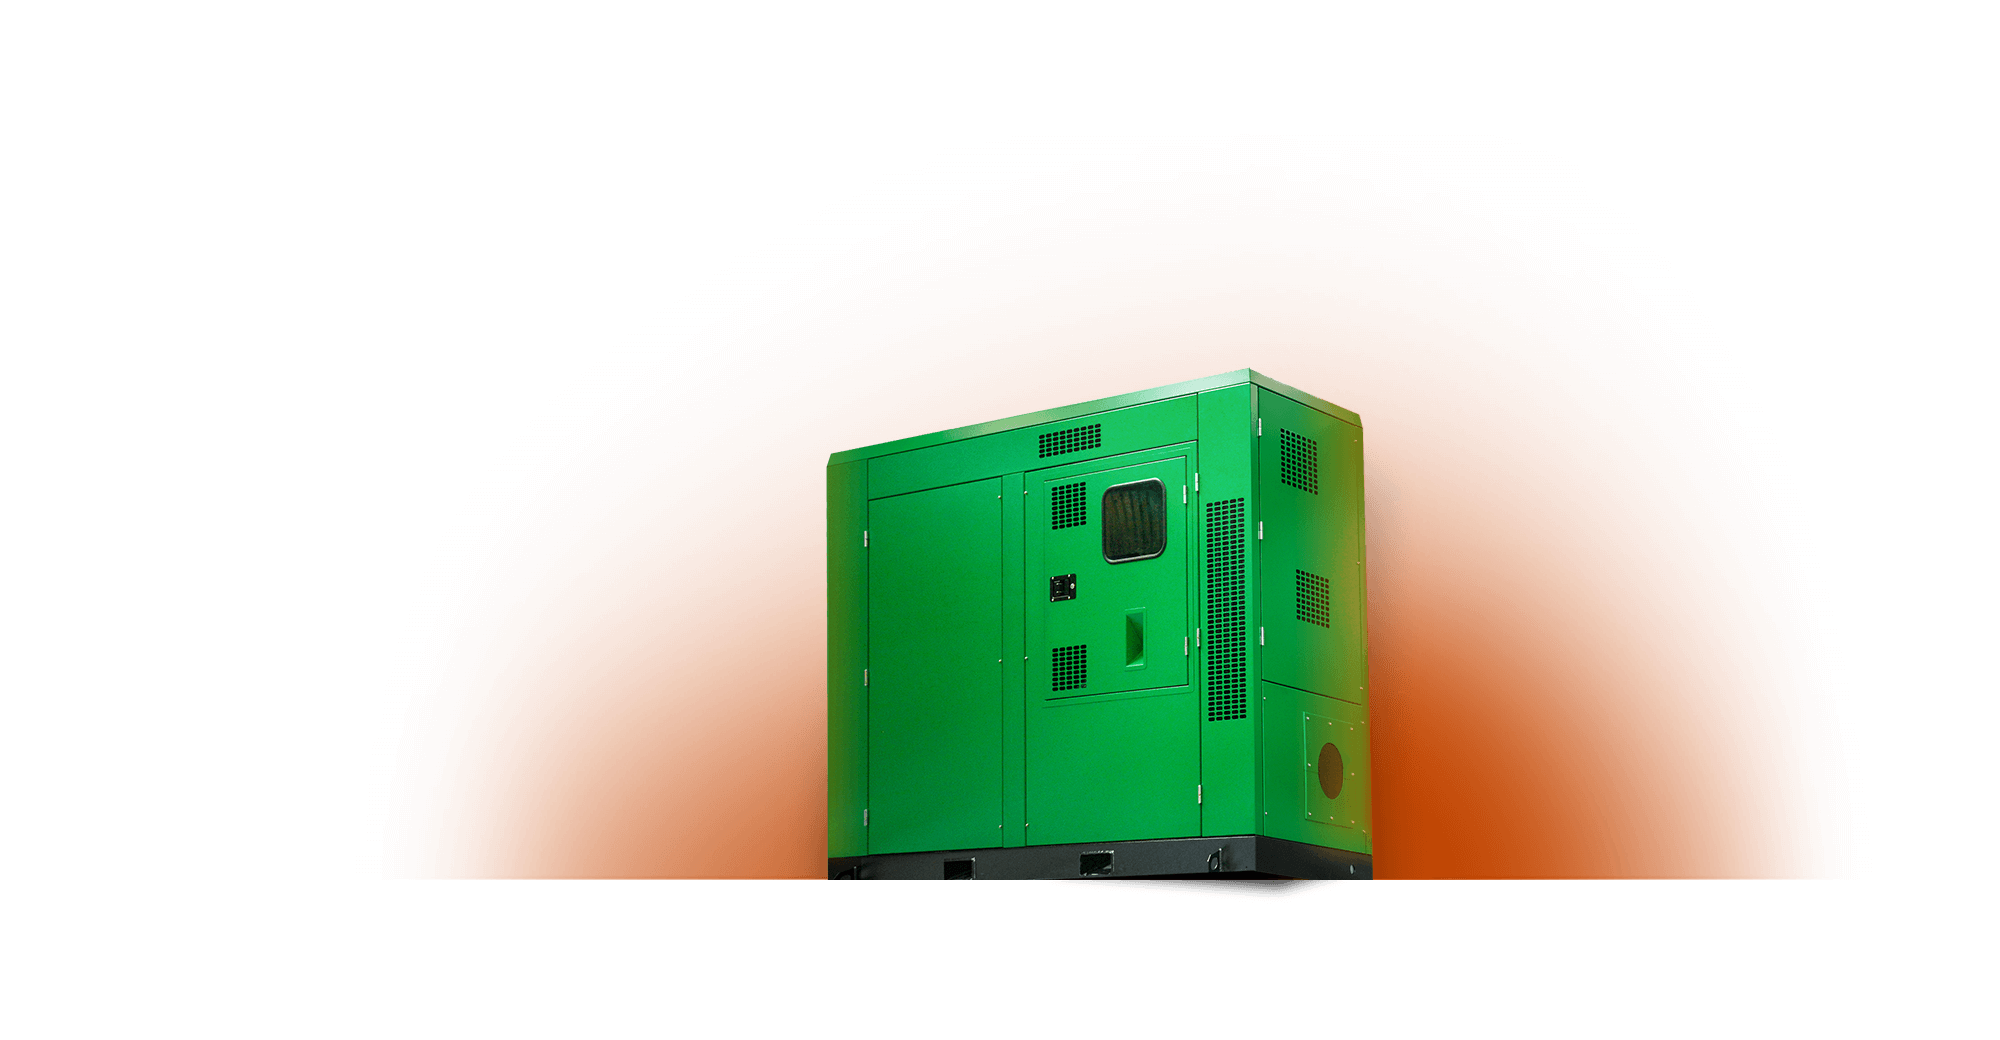 Amcanu industrial enclosure